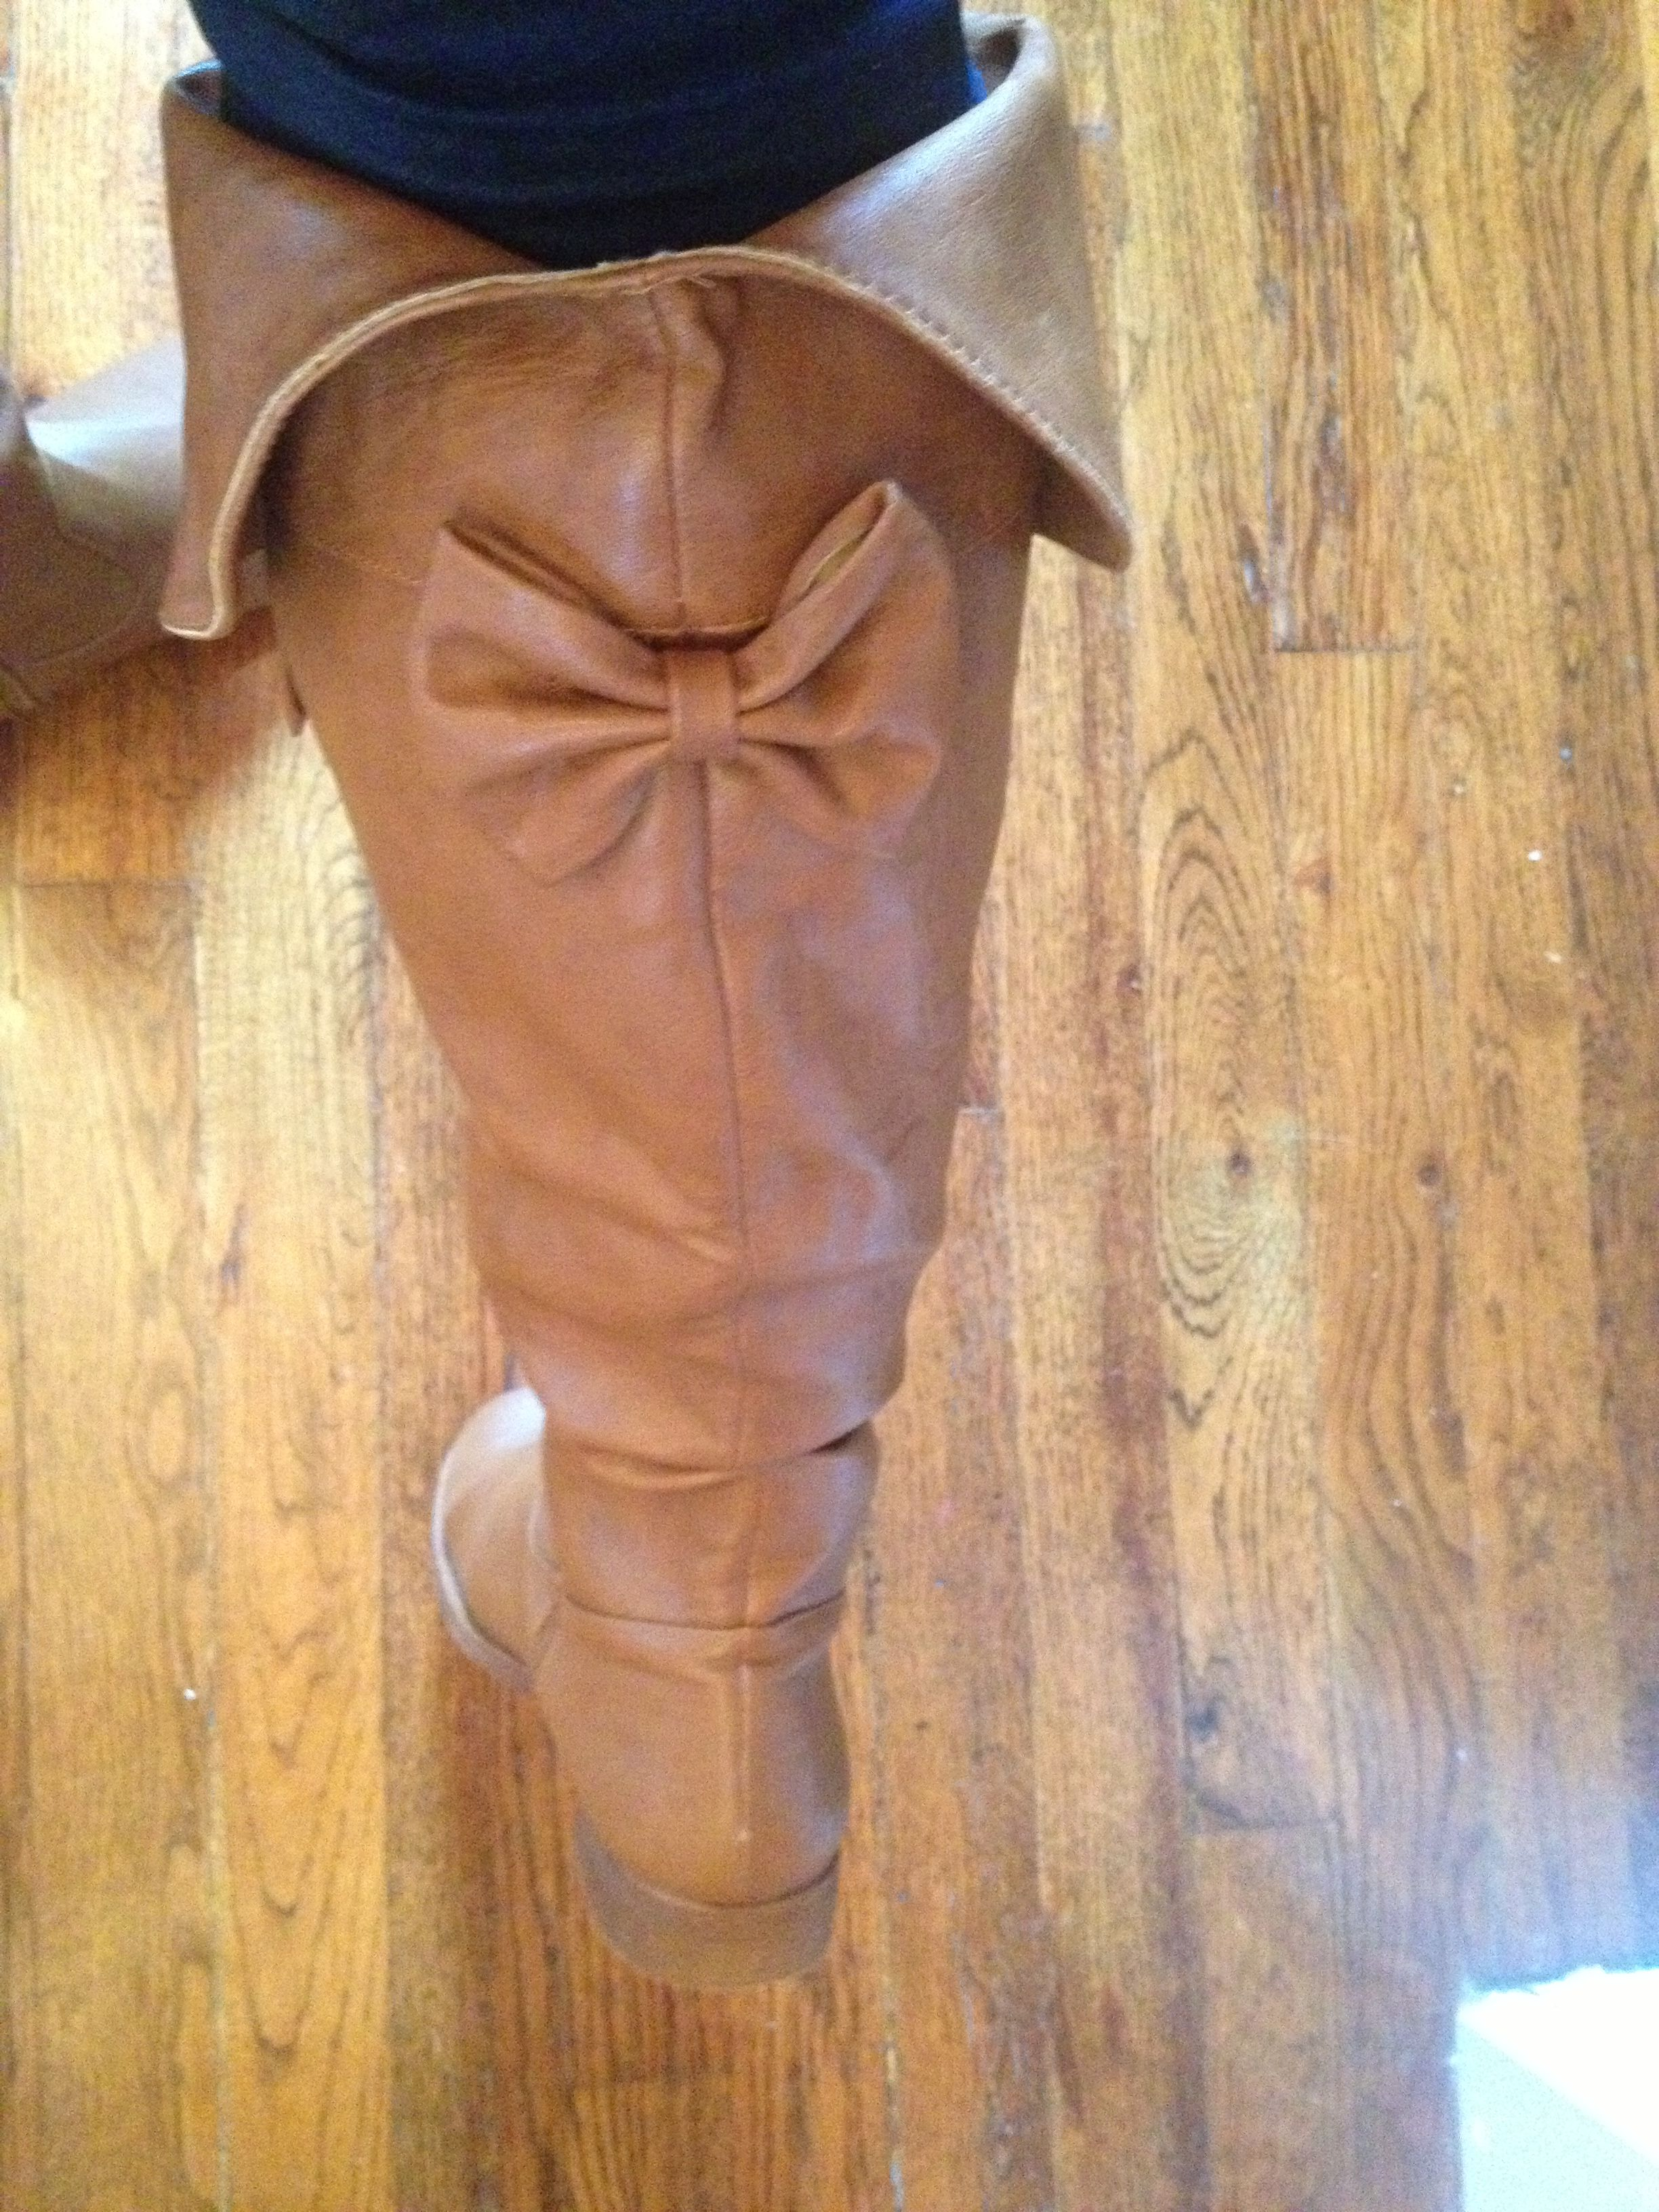 Riding boots. Love the bow!